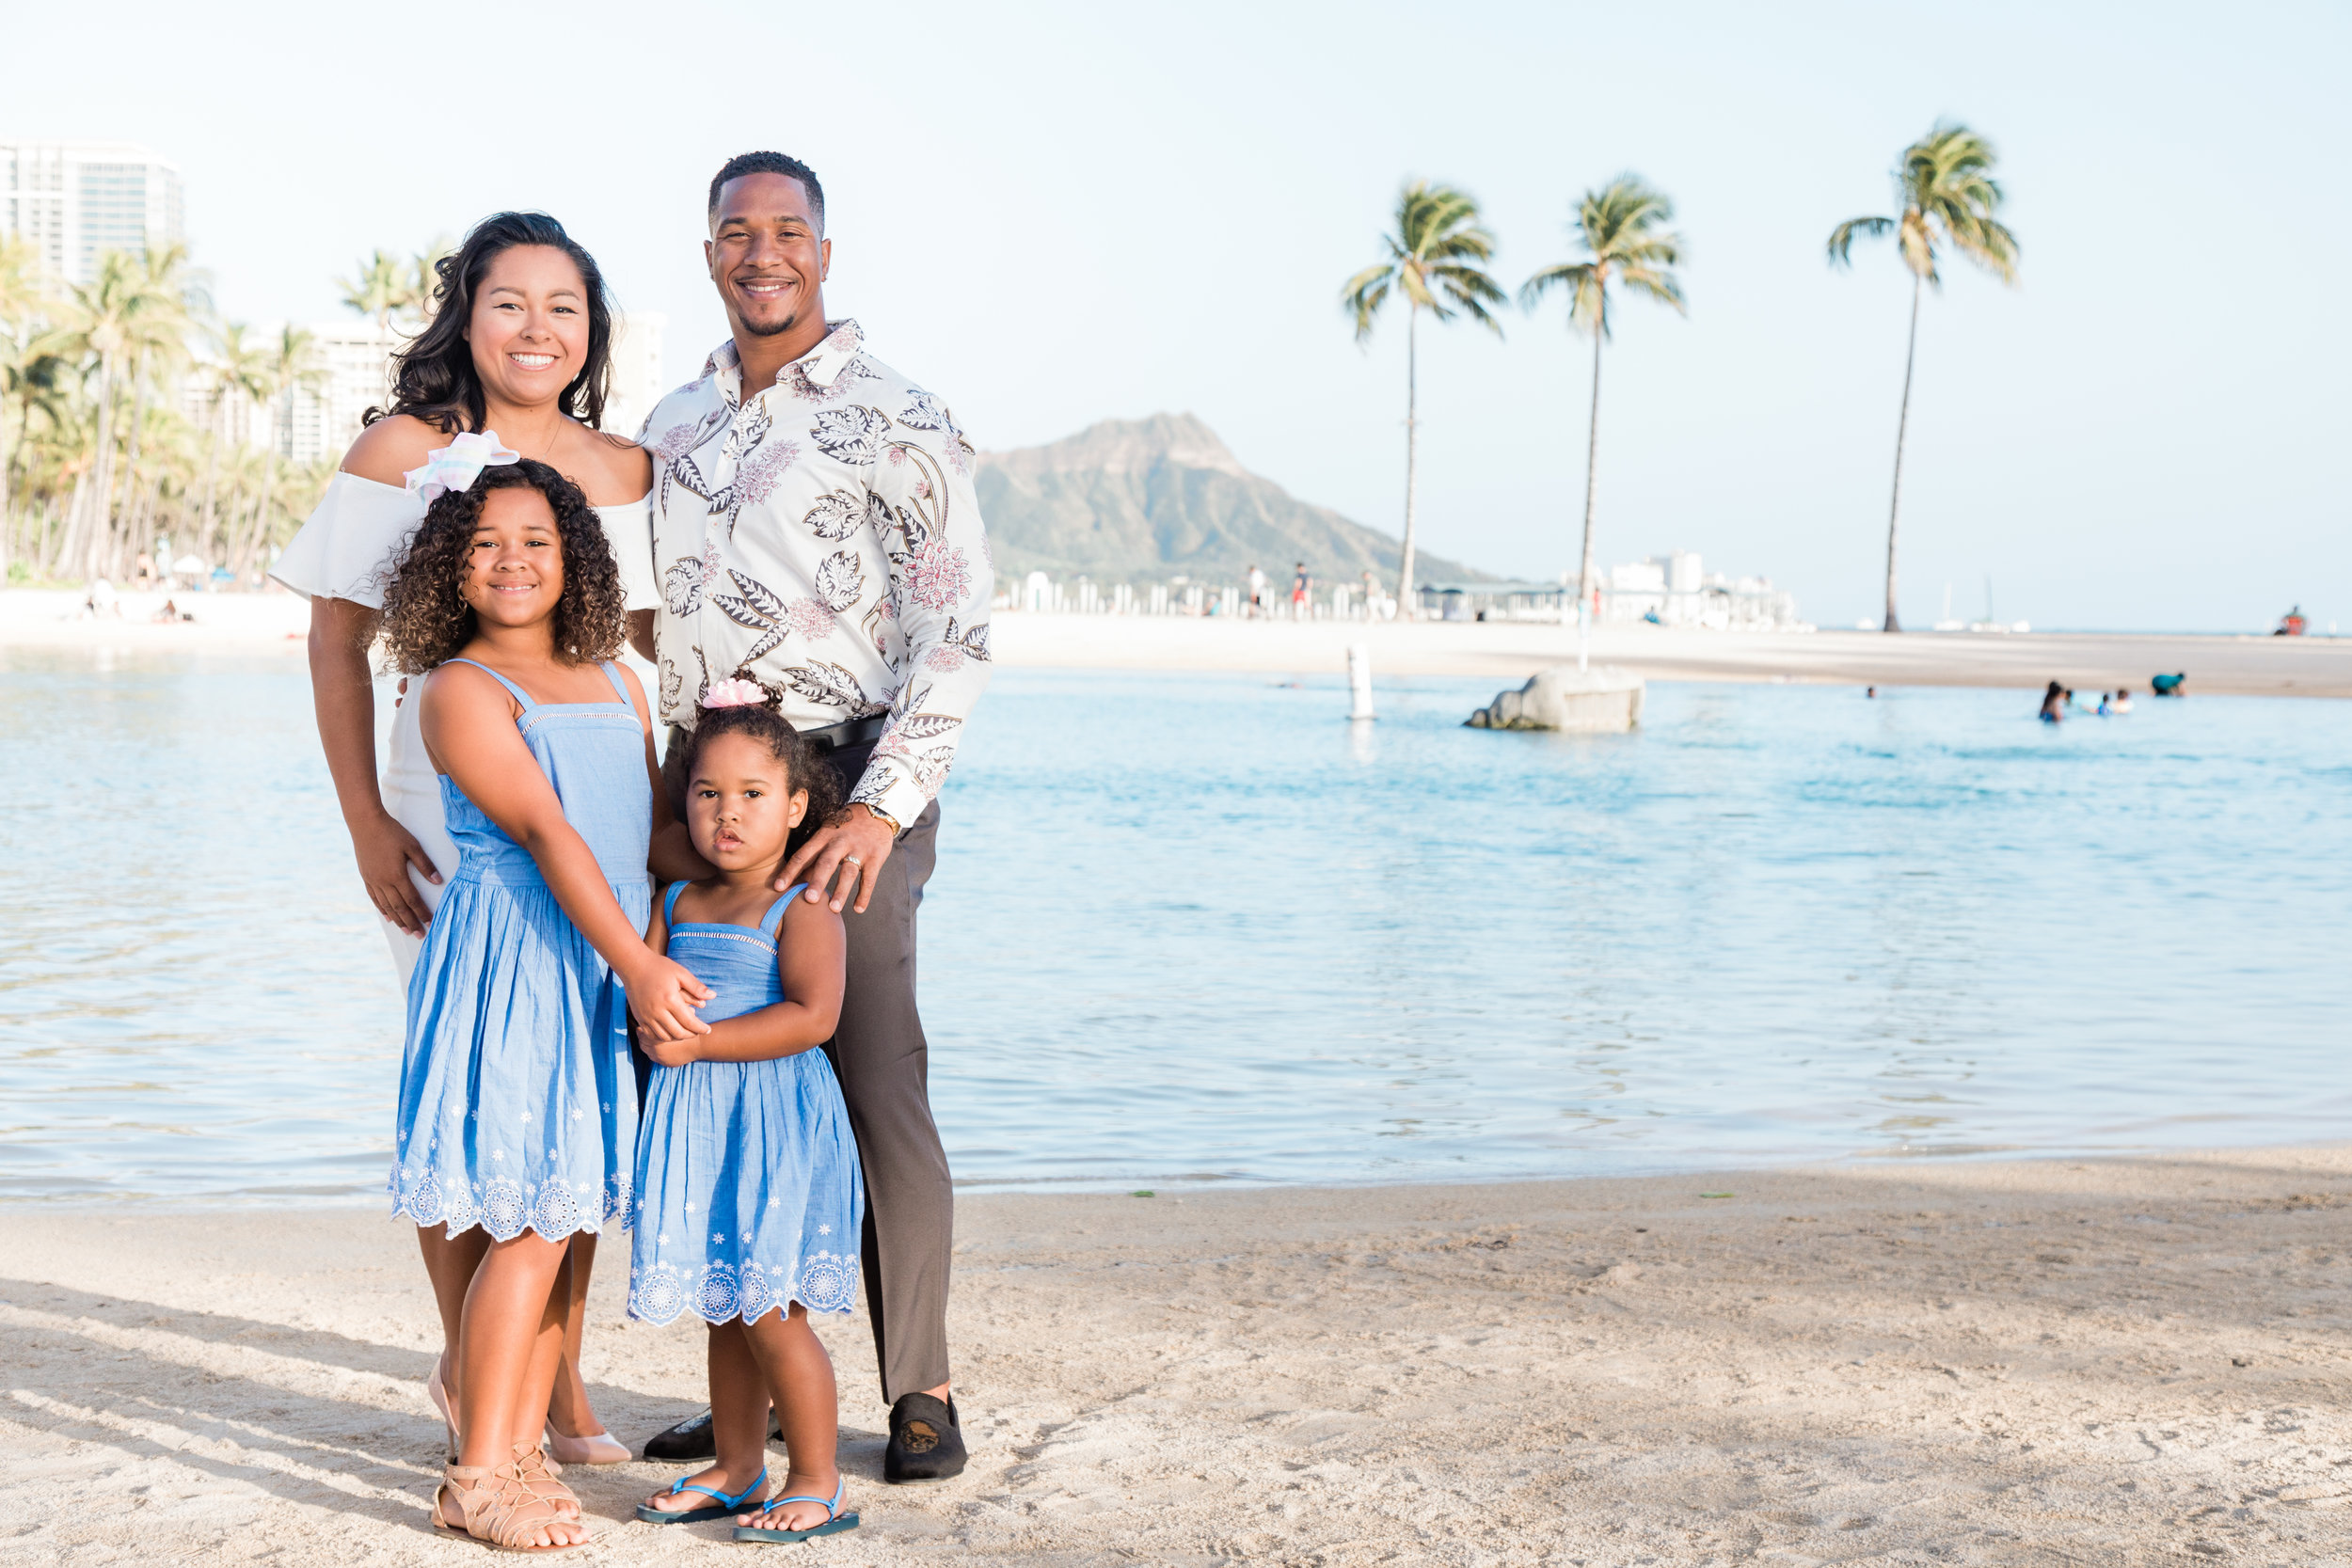 McArthur Family - Hilton Lagoon - Calamic Photography 20190317-1.jpg